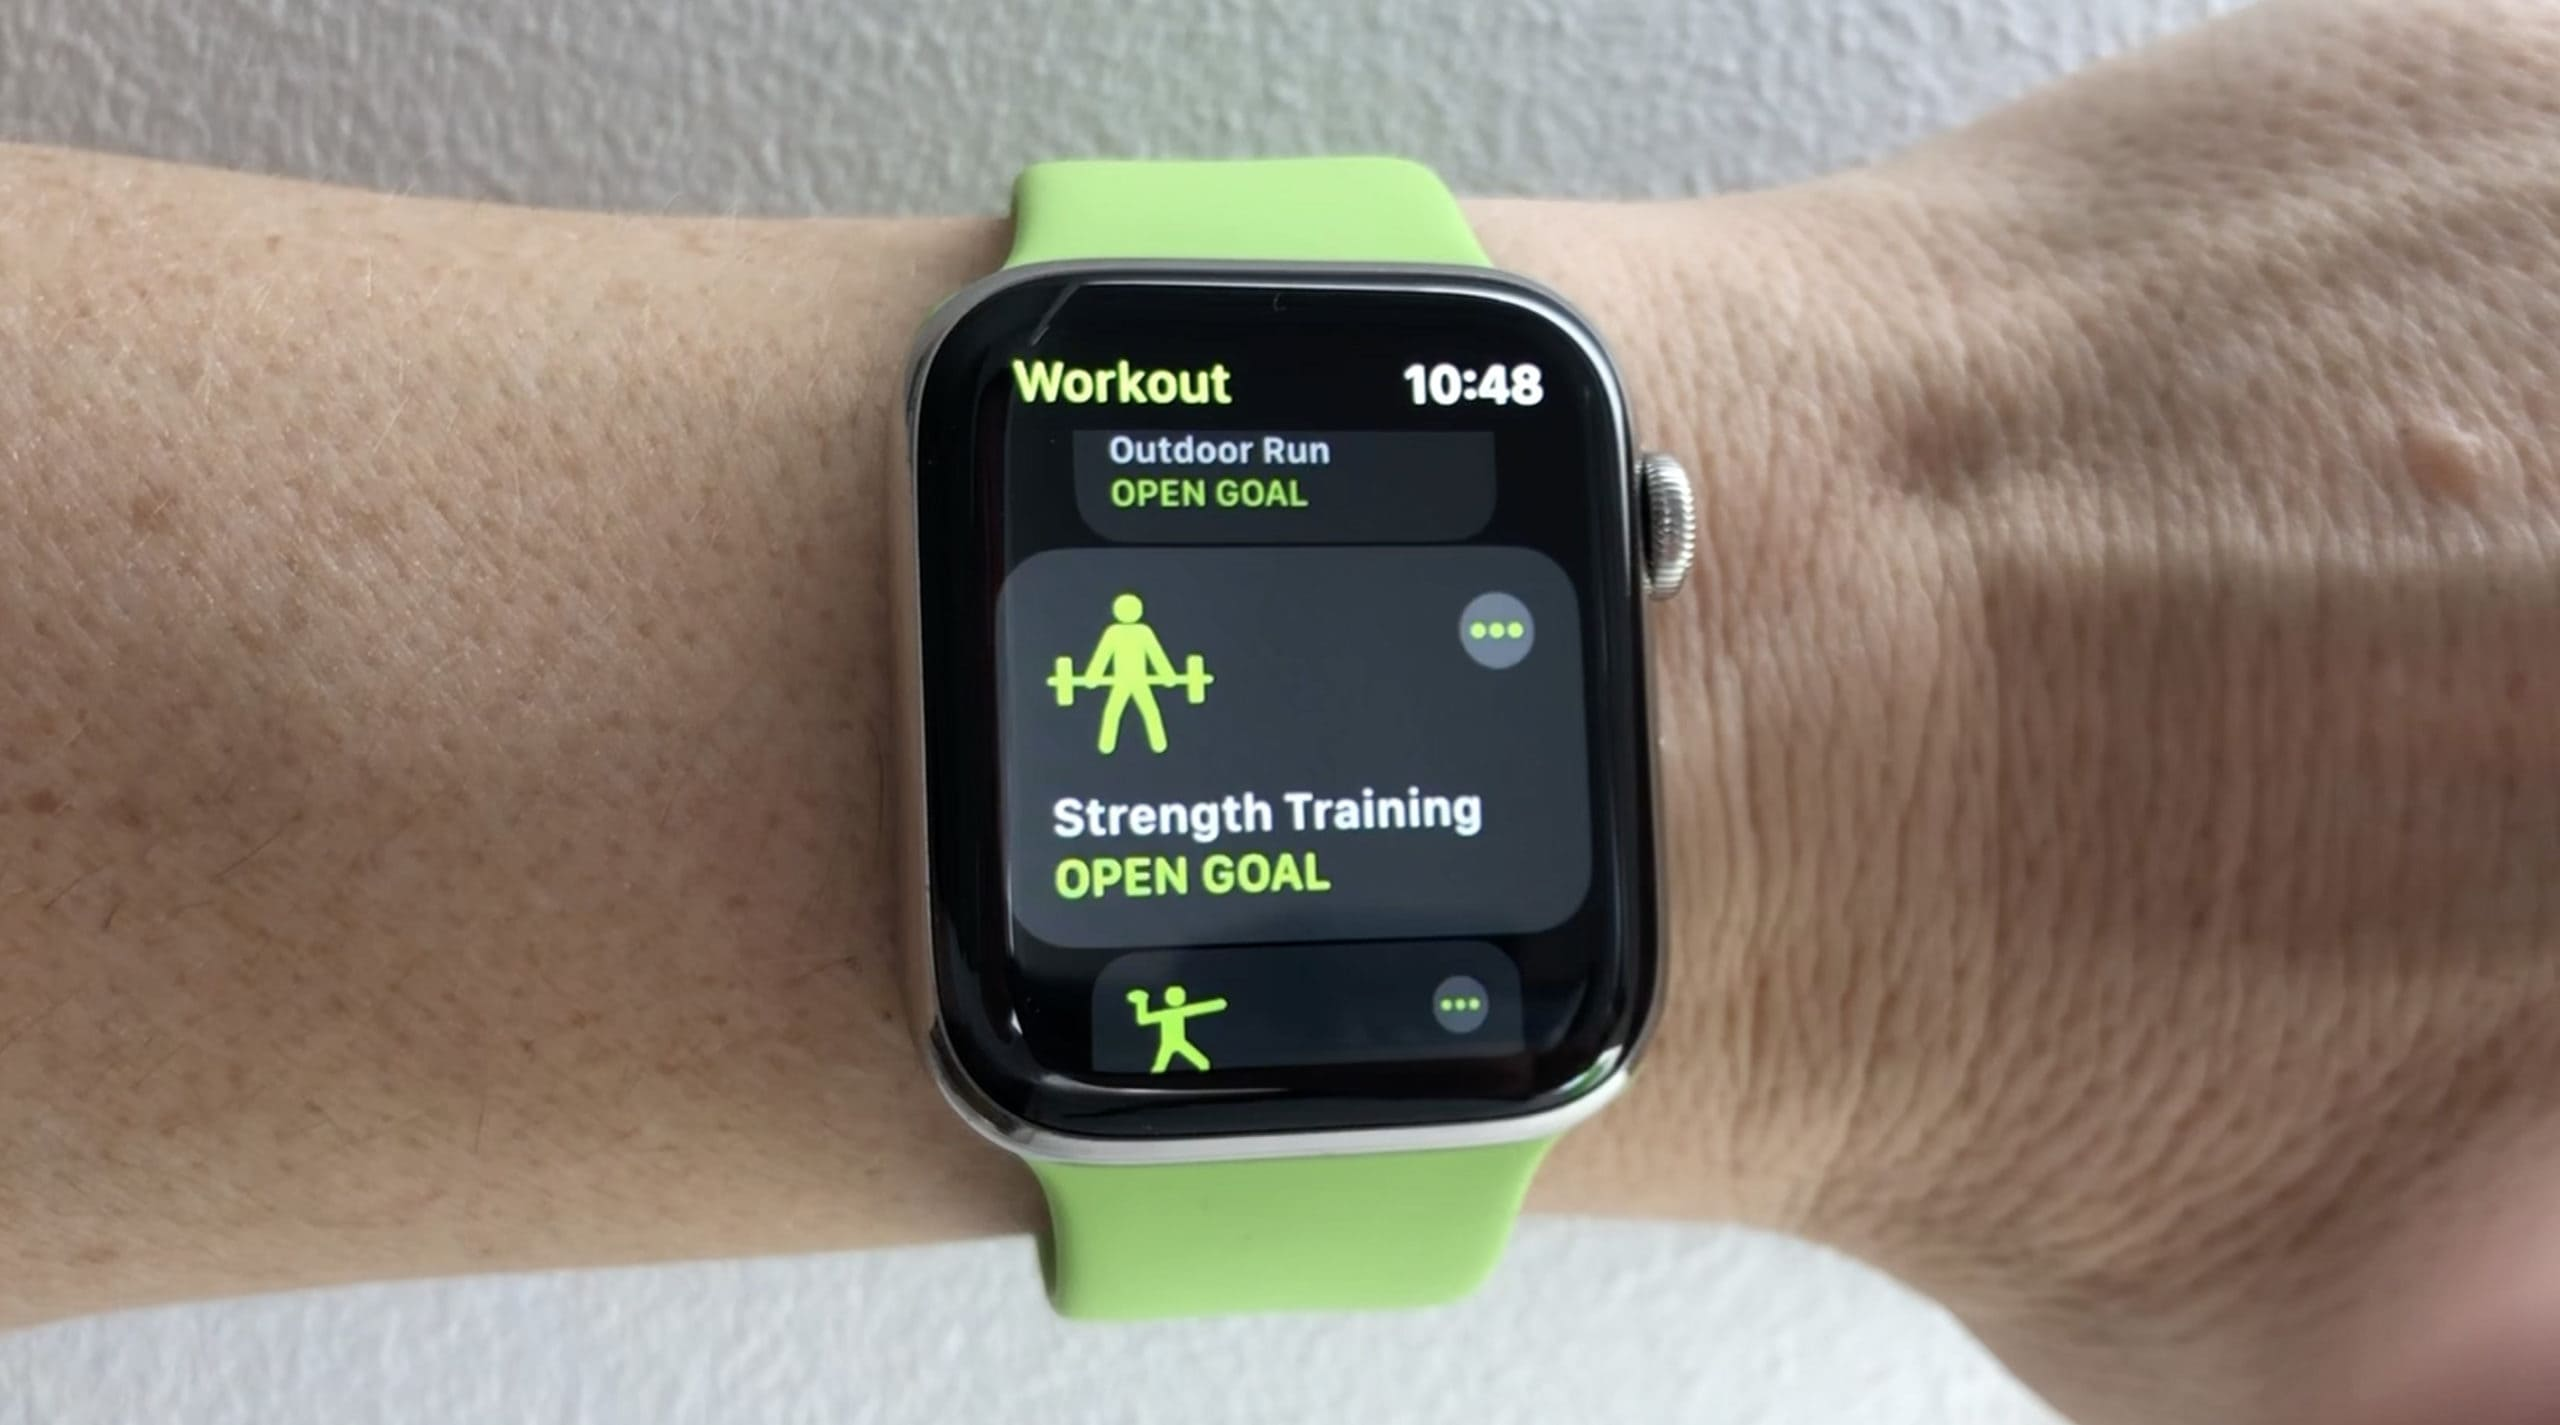 Use the Apple Watch Strength Training option to log your six-pack workout